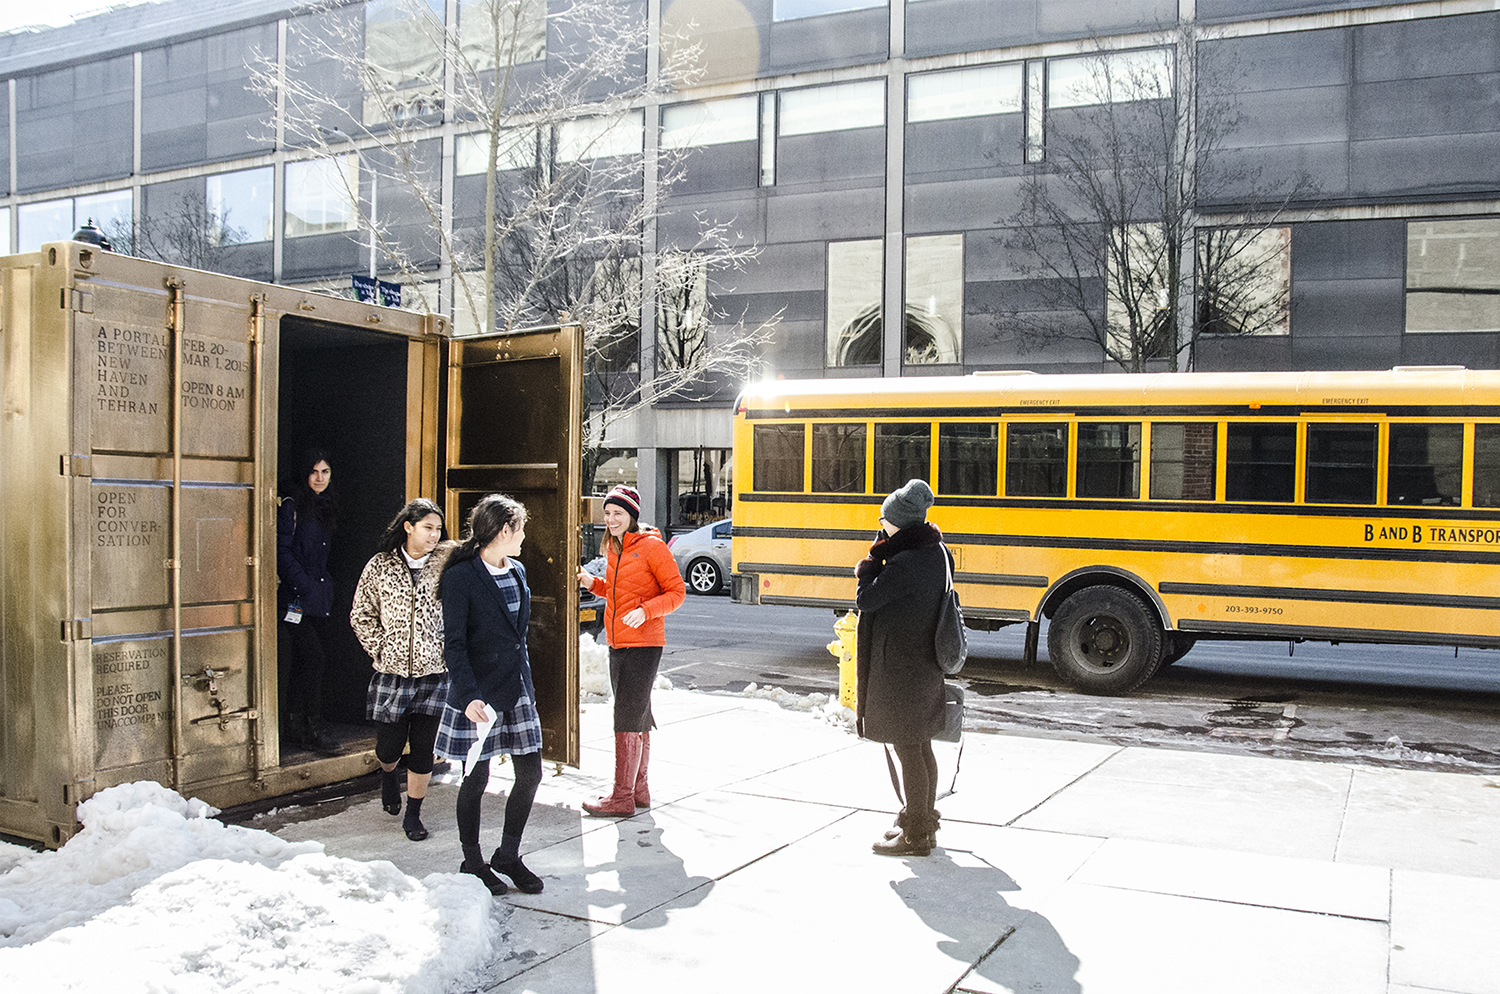 School group visits the New Haven Portal and speaks with Tehran